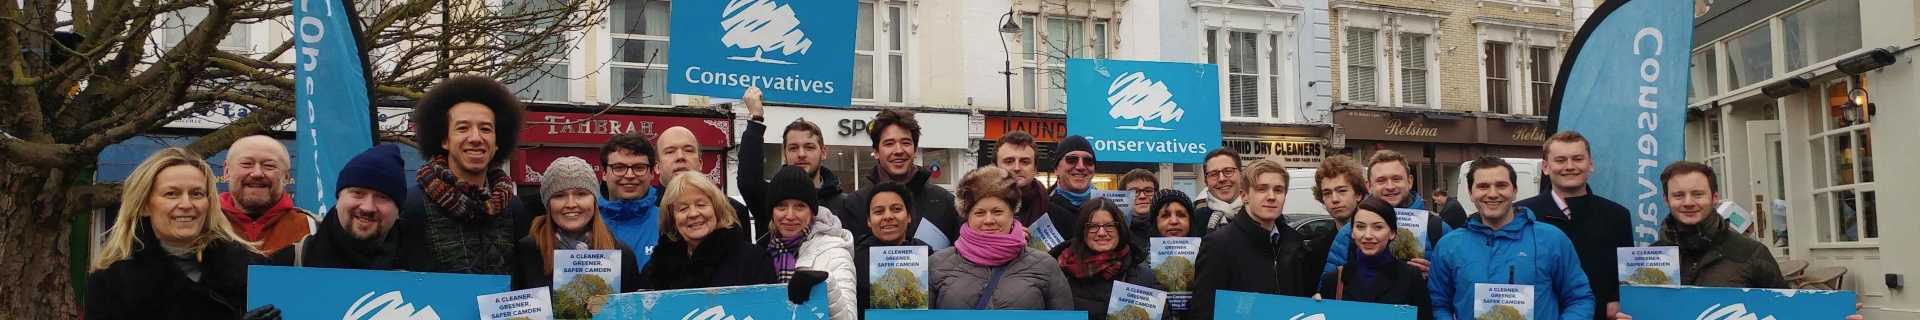 Banner image for Camden Conservatives